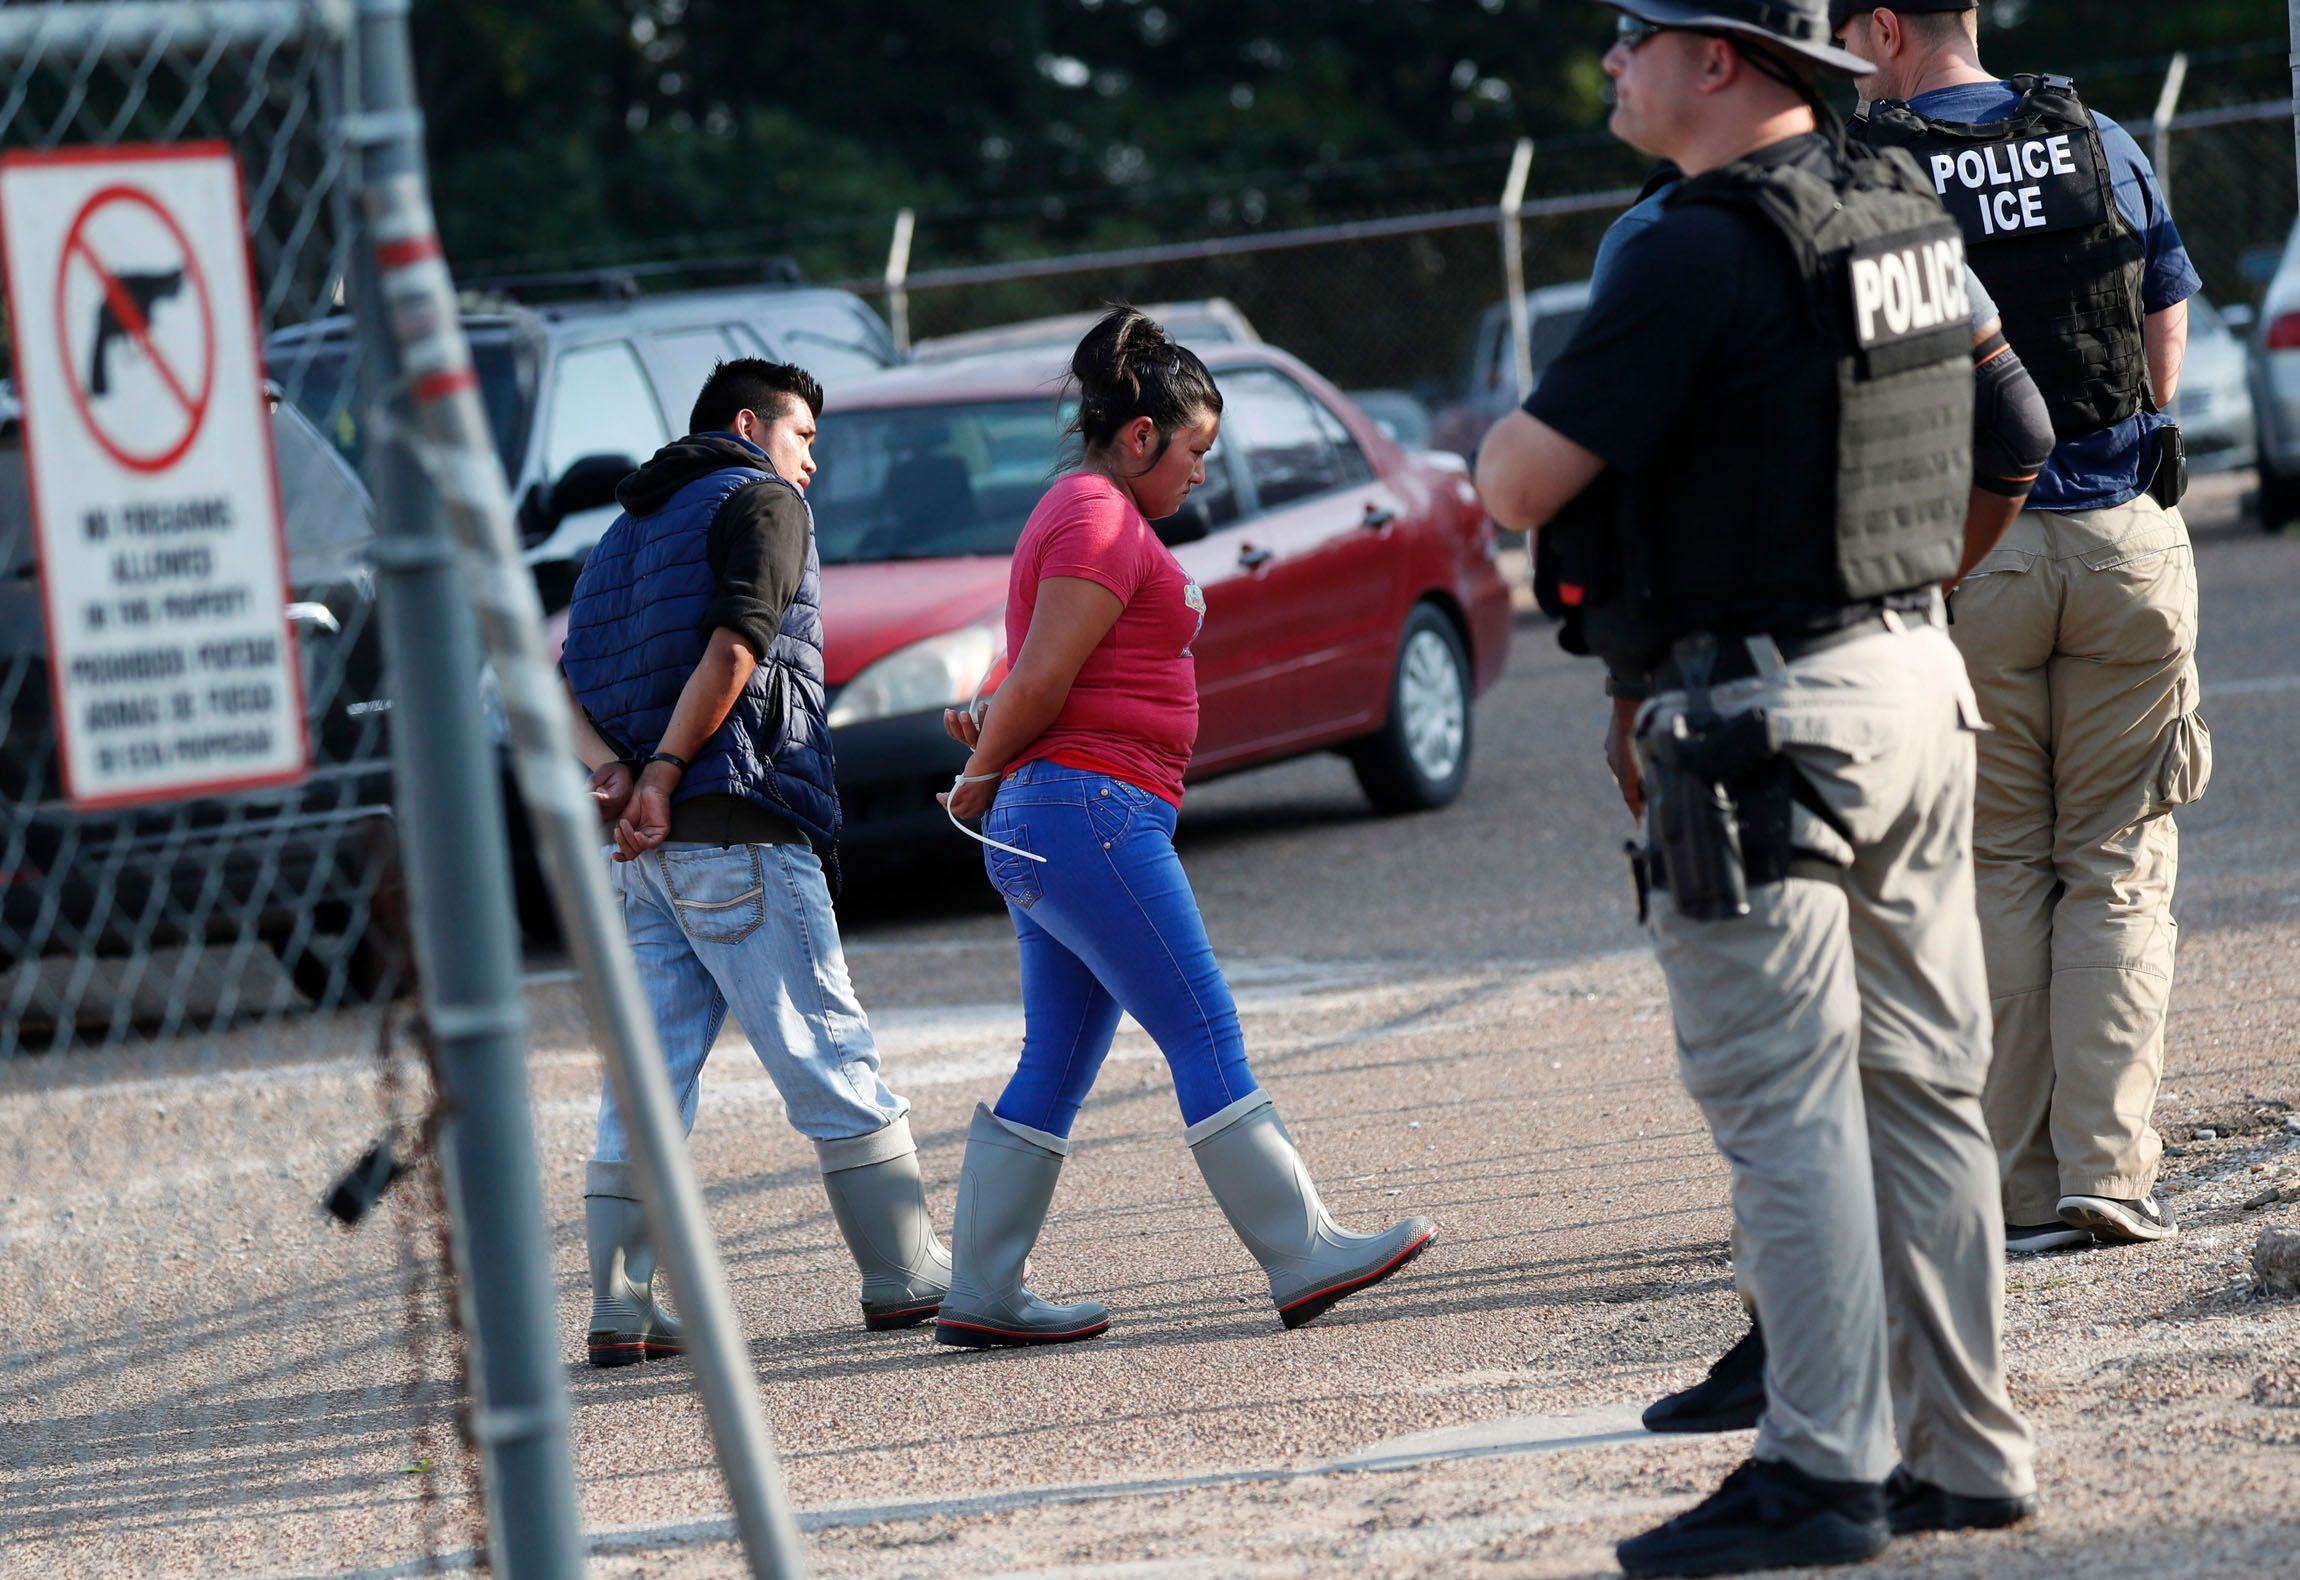 If the Mississippi ICE Raids Were About 'The Law,' Why Were No Executives Marched Out in Cuffs?